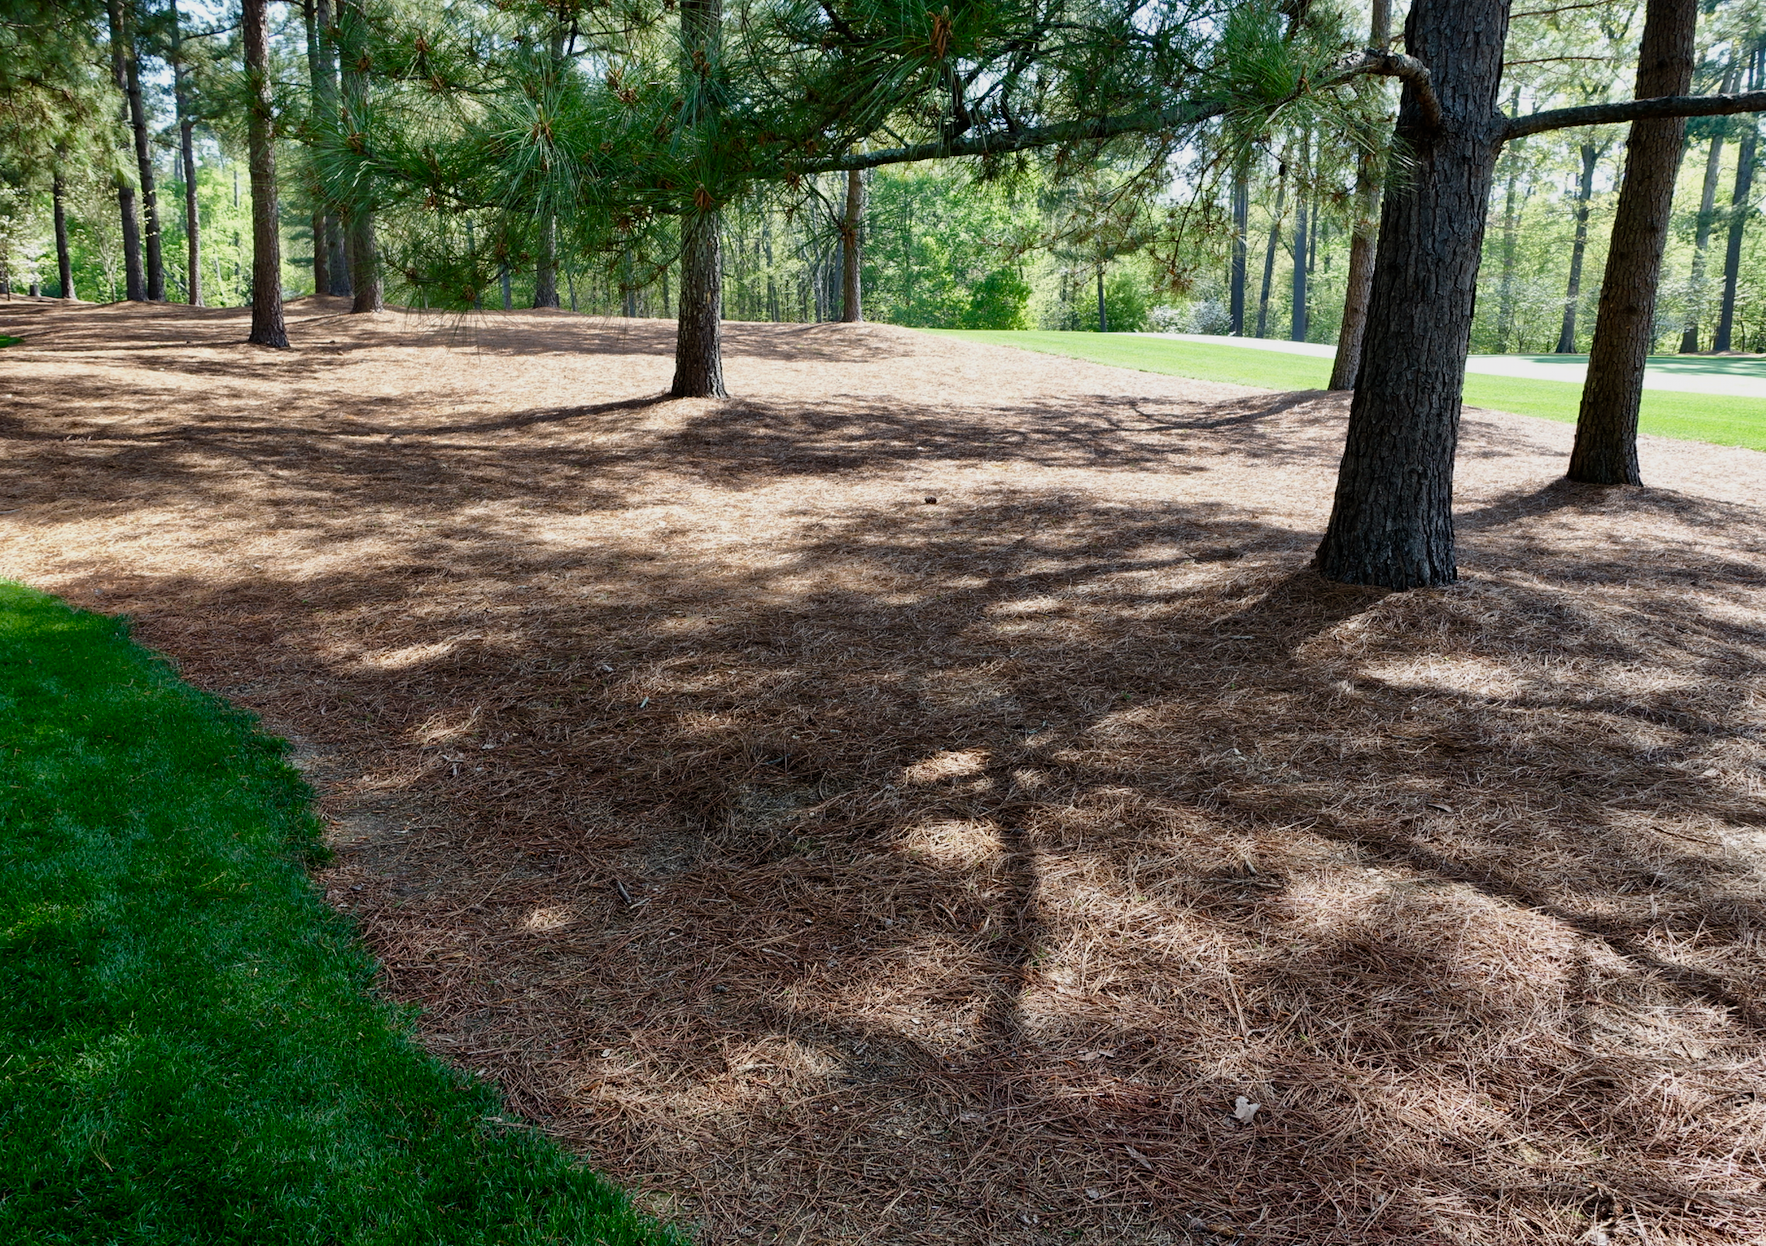 The pine needles under the trees is carefully groomed as are the lower branches.